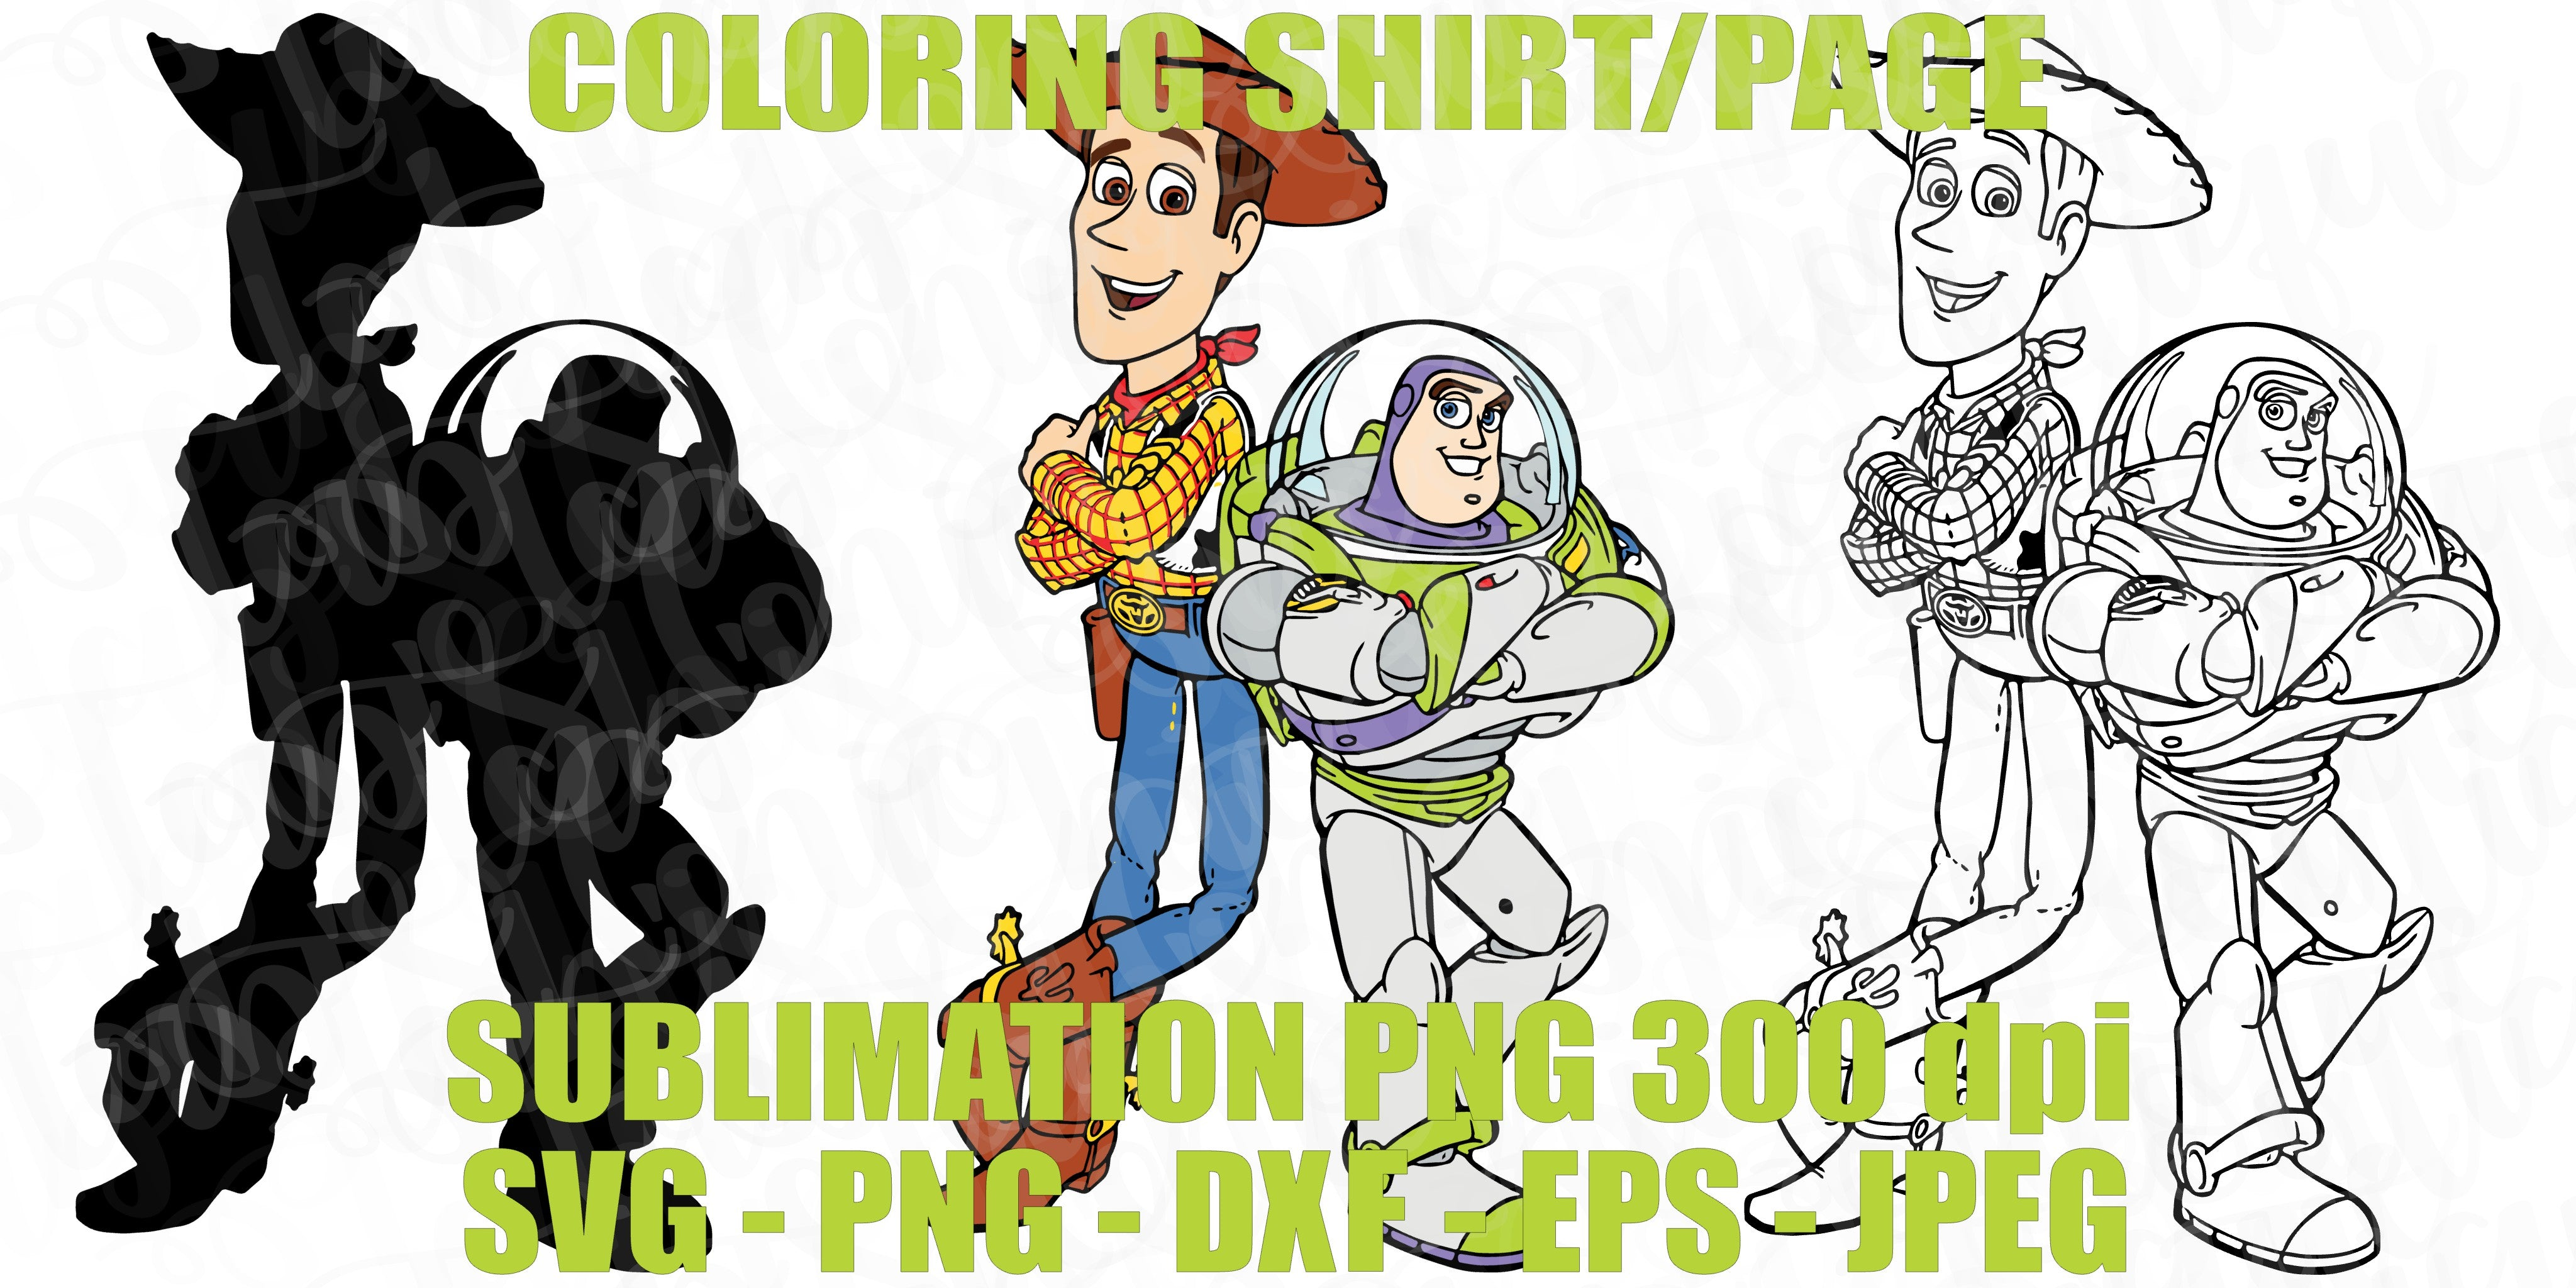 Woody And Buzz Lightyear Toy Story 4 Svg Jpeg High Def 300 Dpi Png Dxf Tab S Chic Boutique